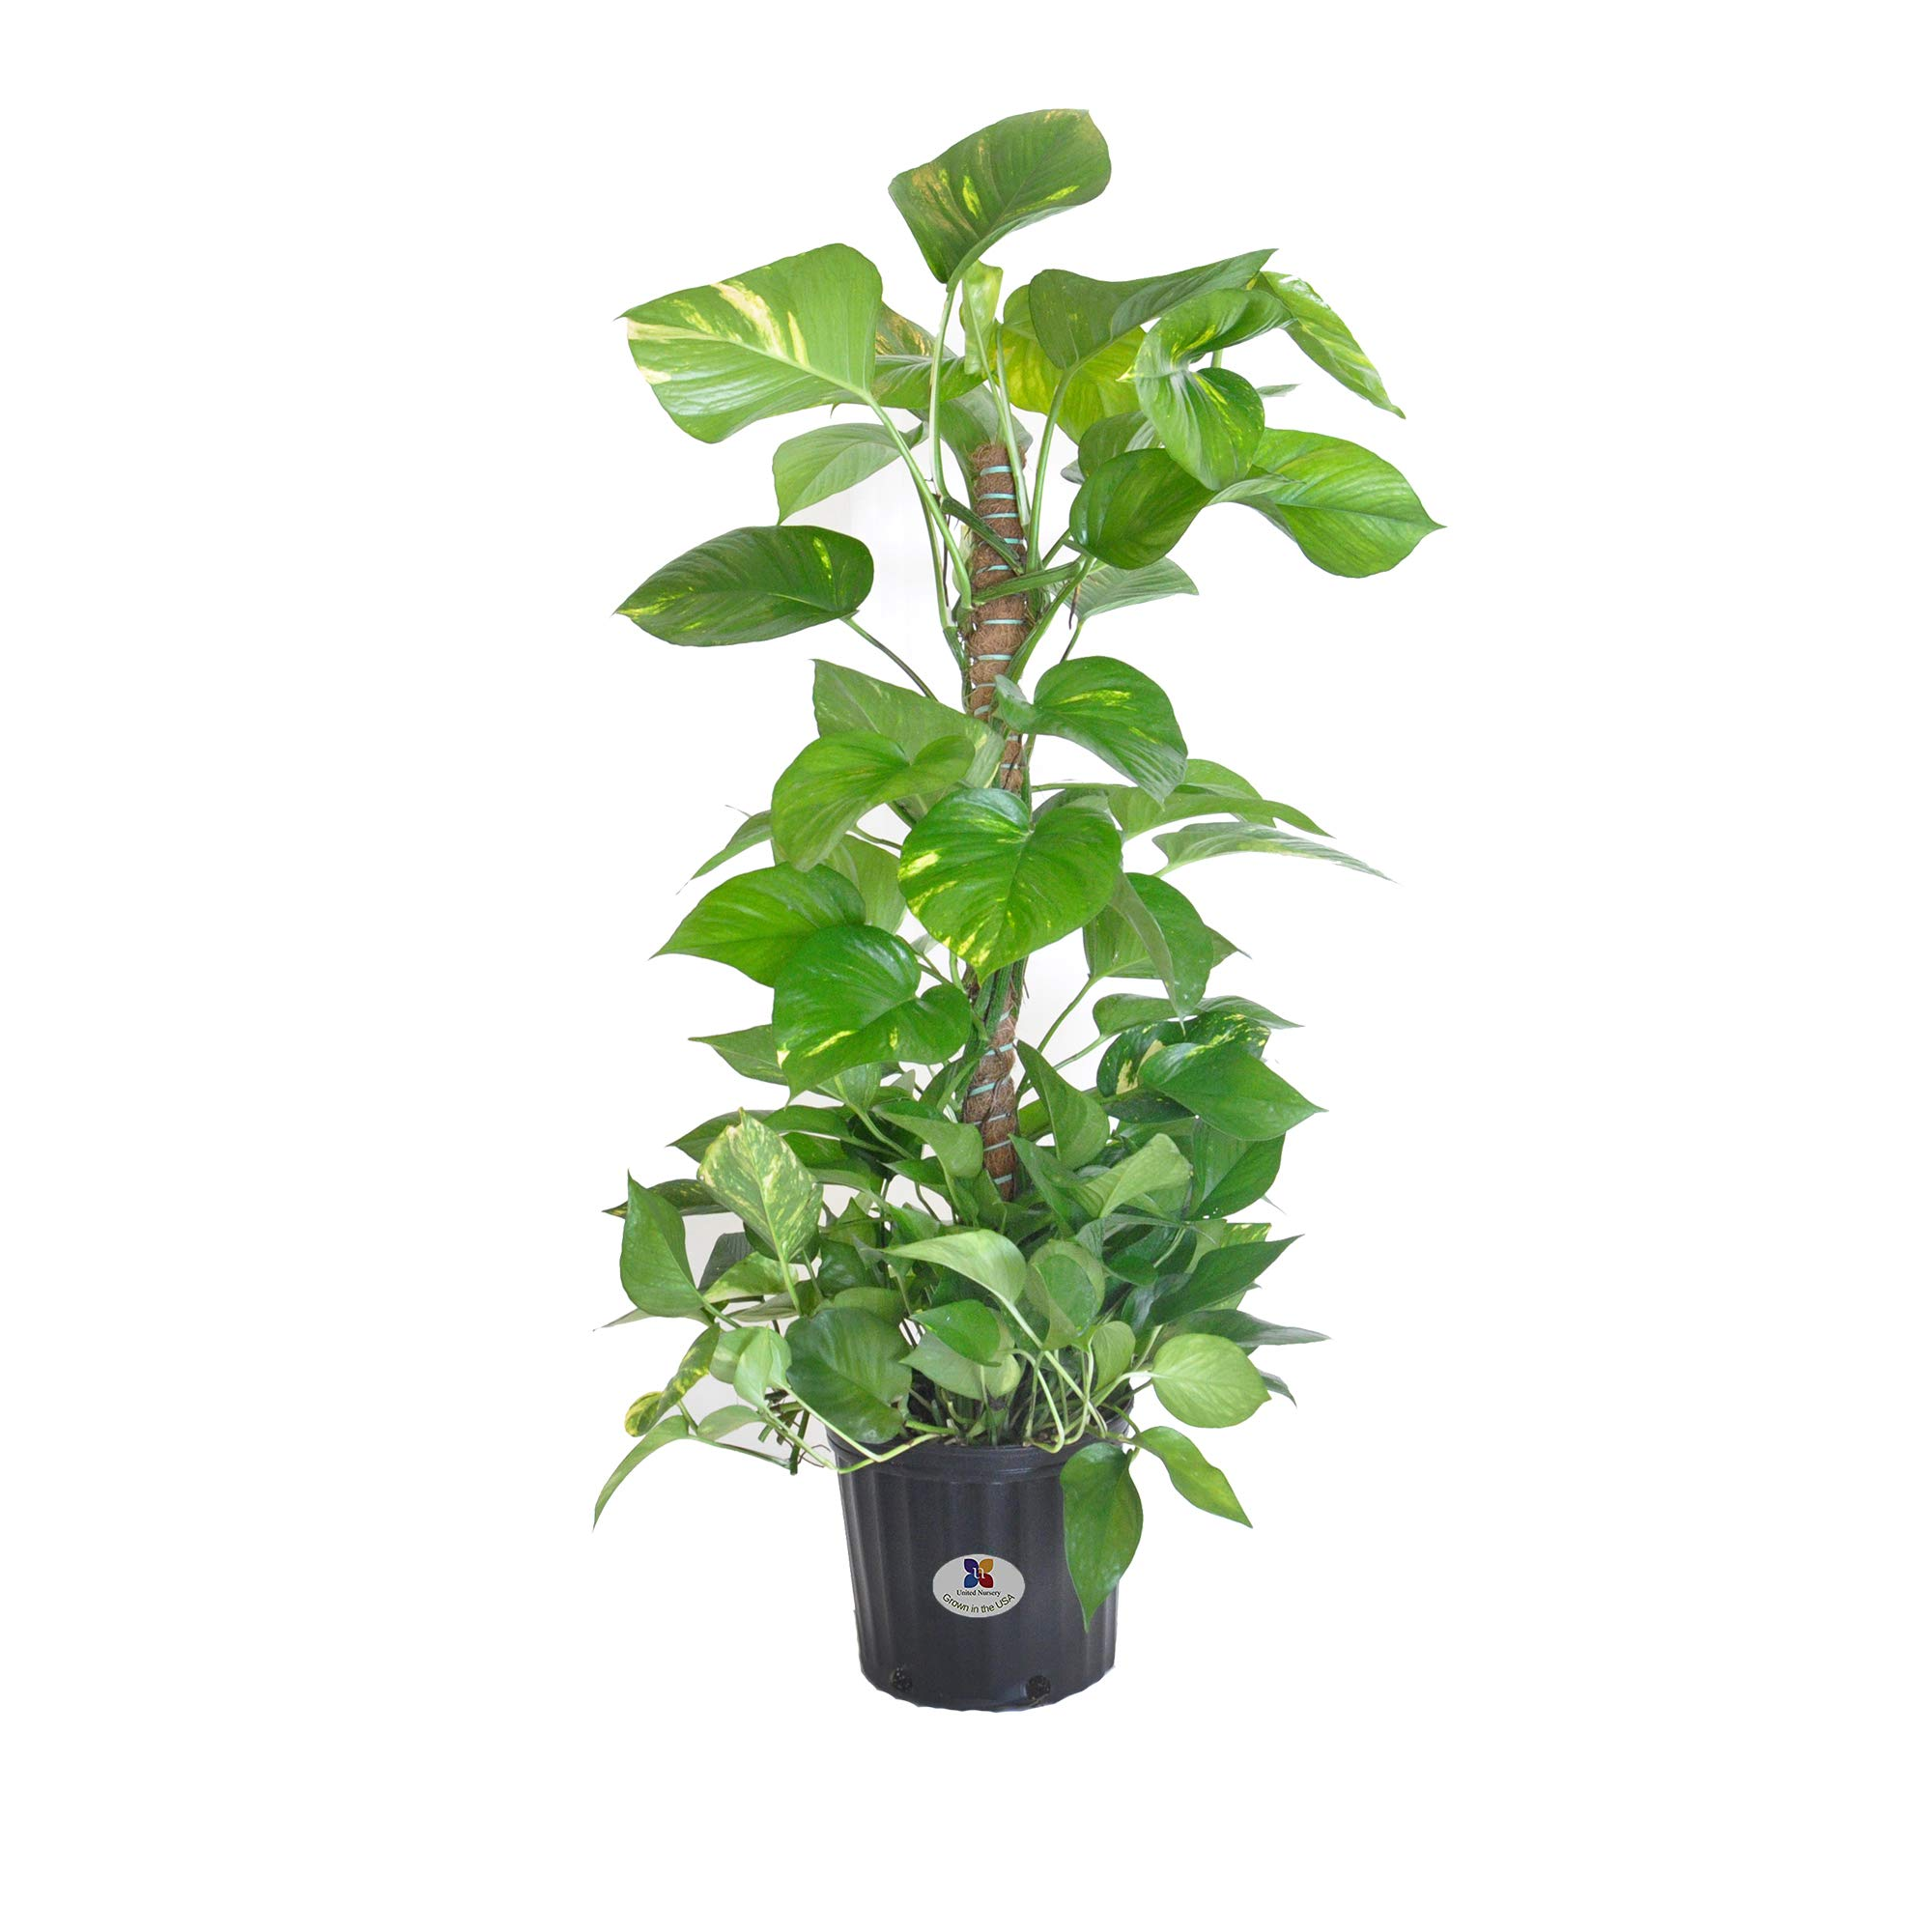 United Nursery Golden Pothos Totem Live Indoor Air Plant. 38'' Shipping Size. Shipped Fresh in Grower Pot from Our Florida Farm by United Nursery